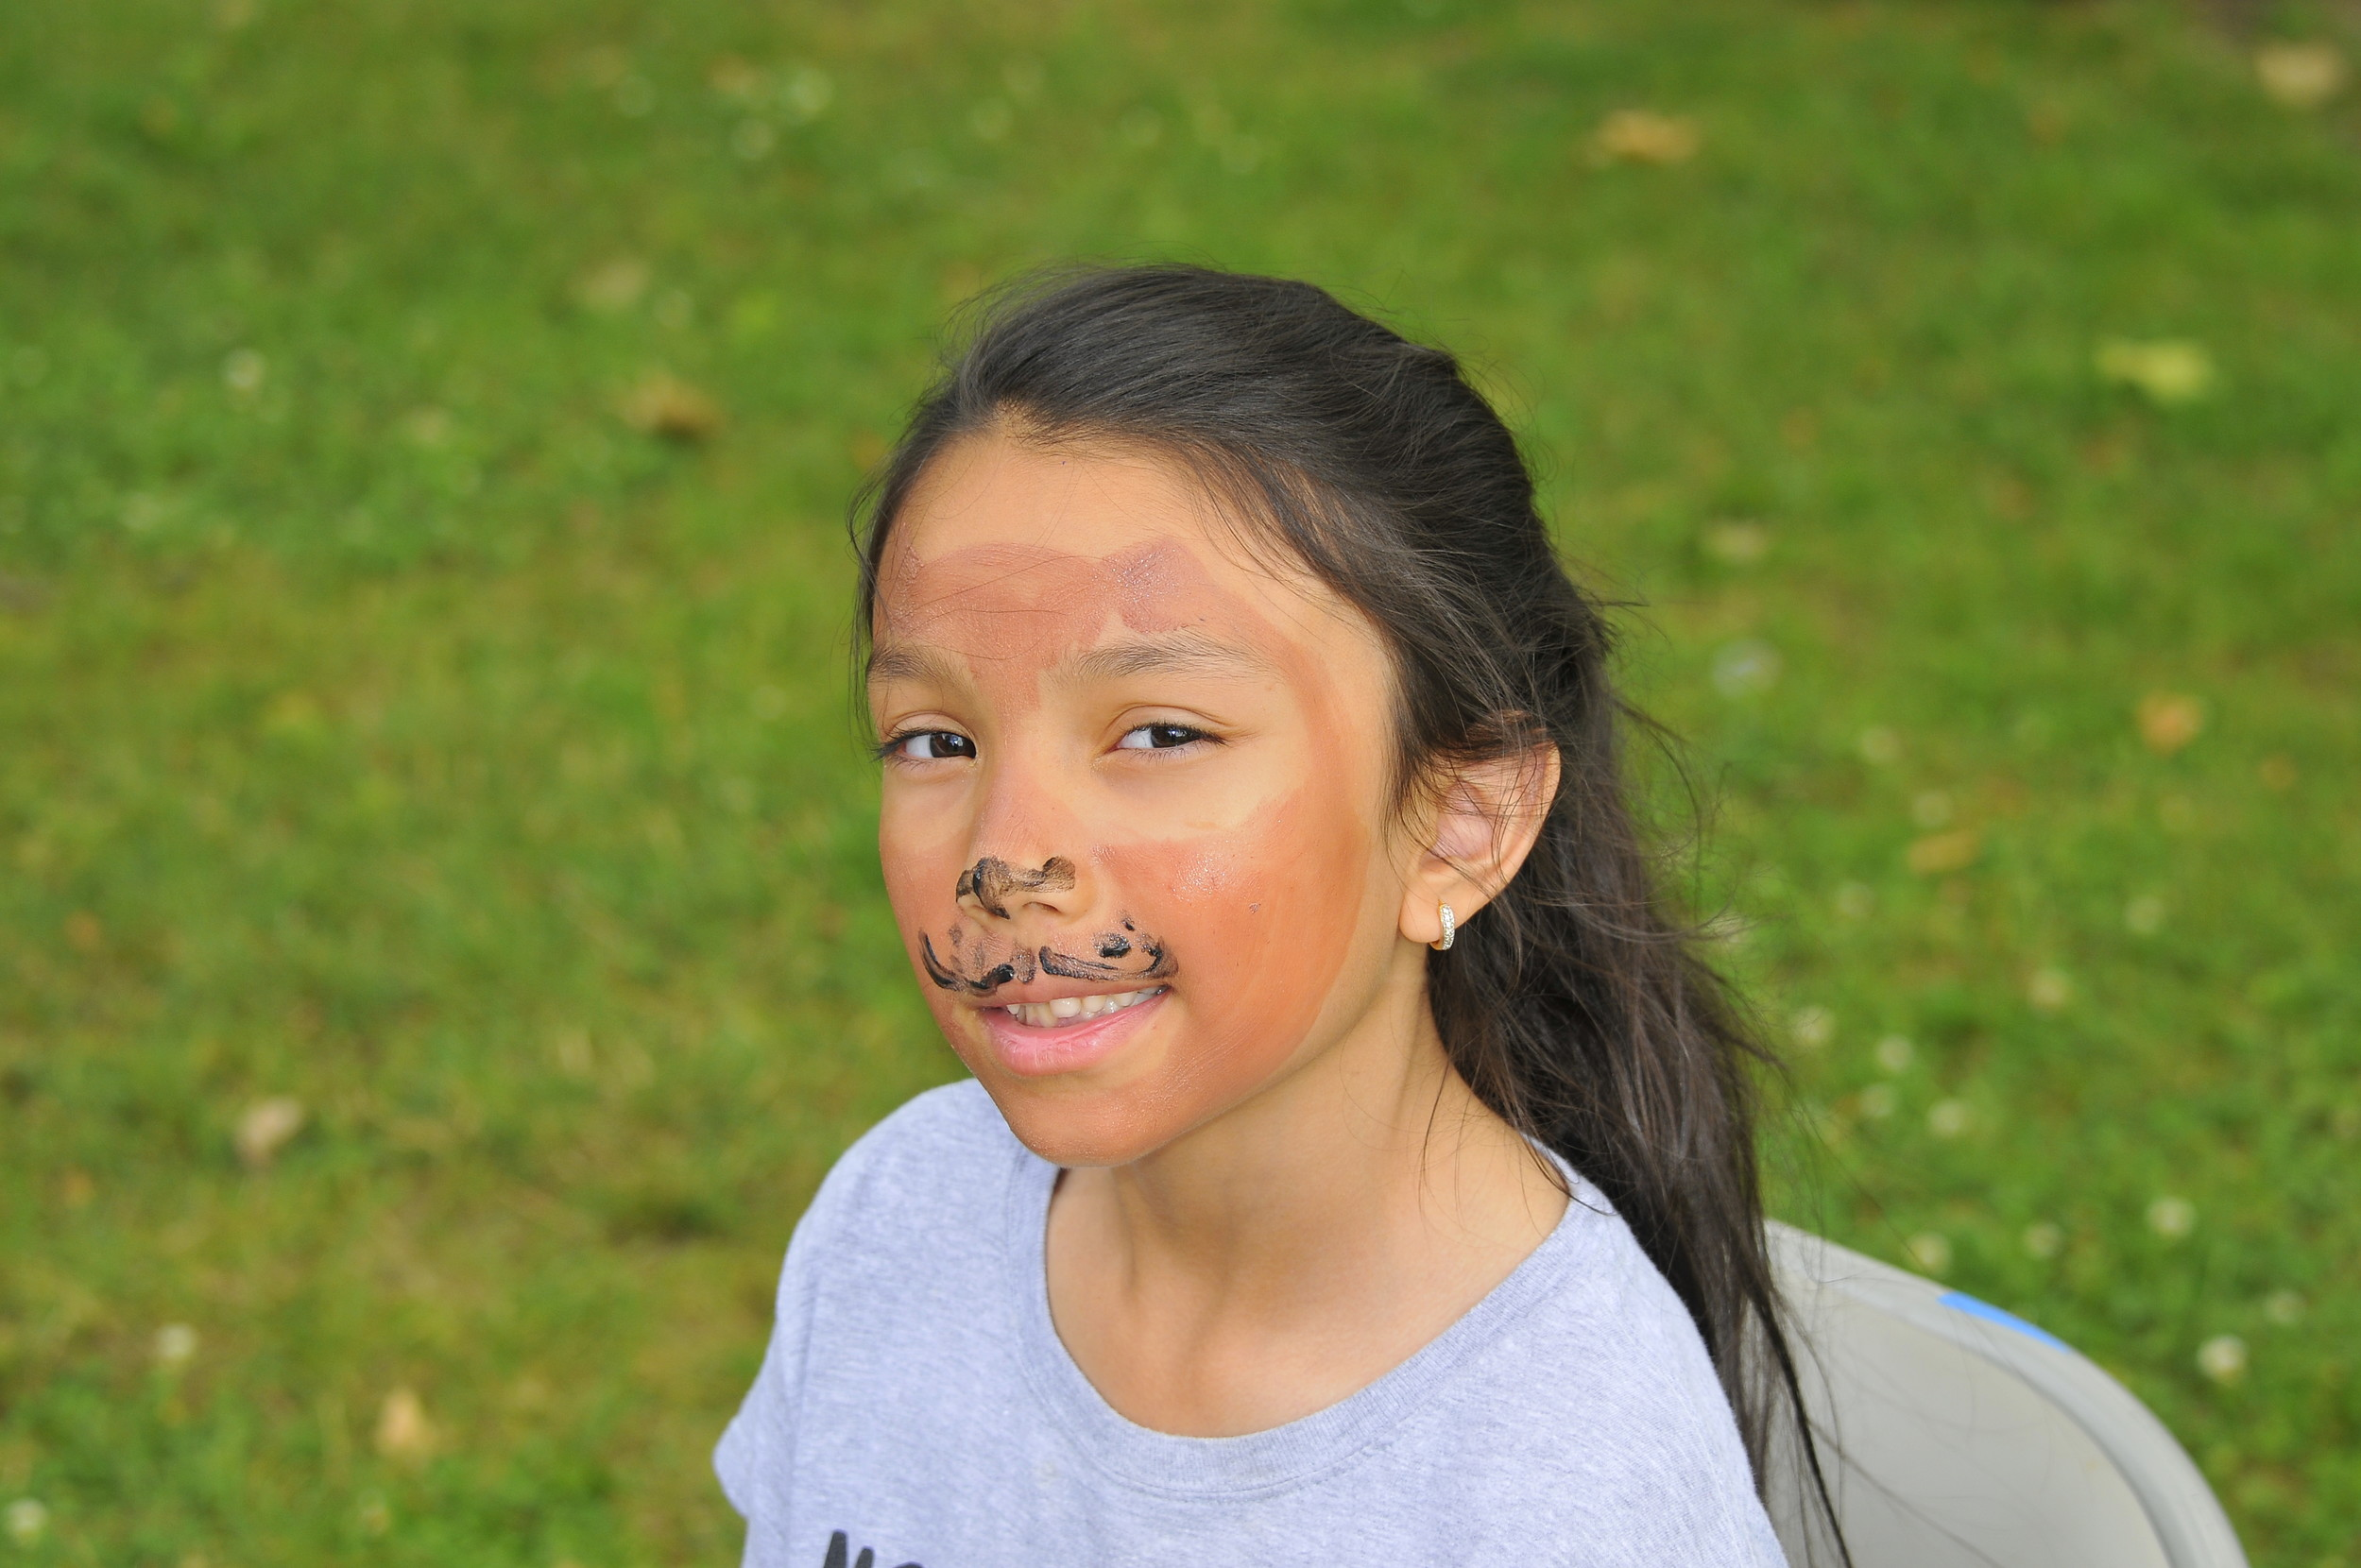 Victoria Lambriola, 8, got her face painted at the celebration.